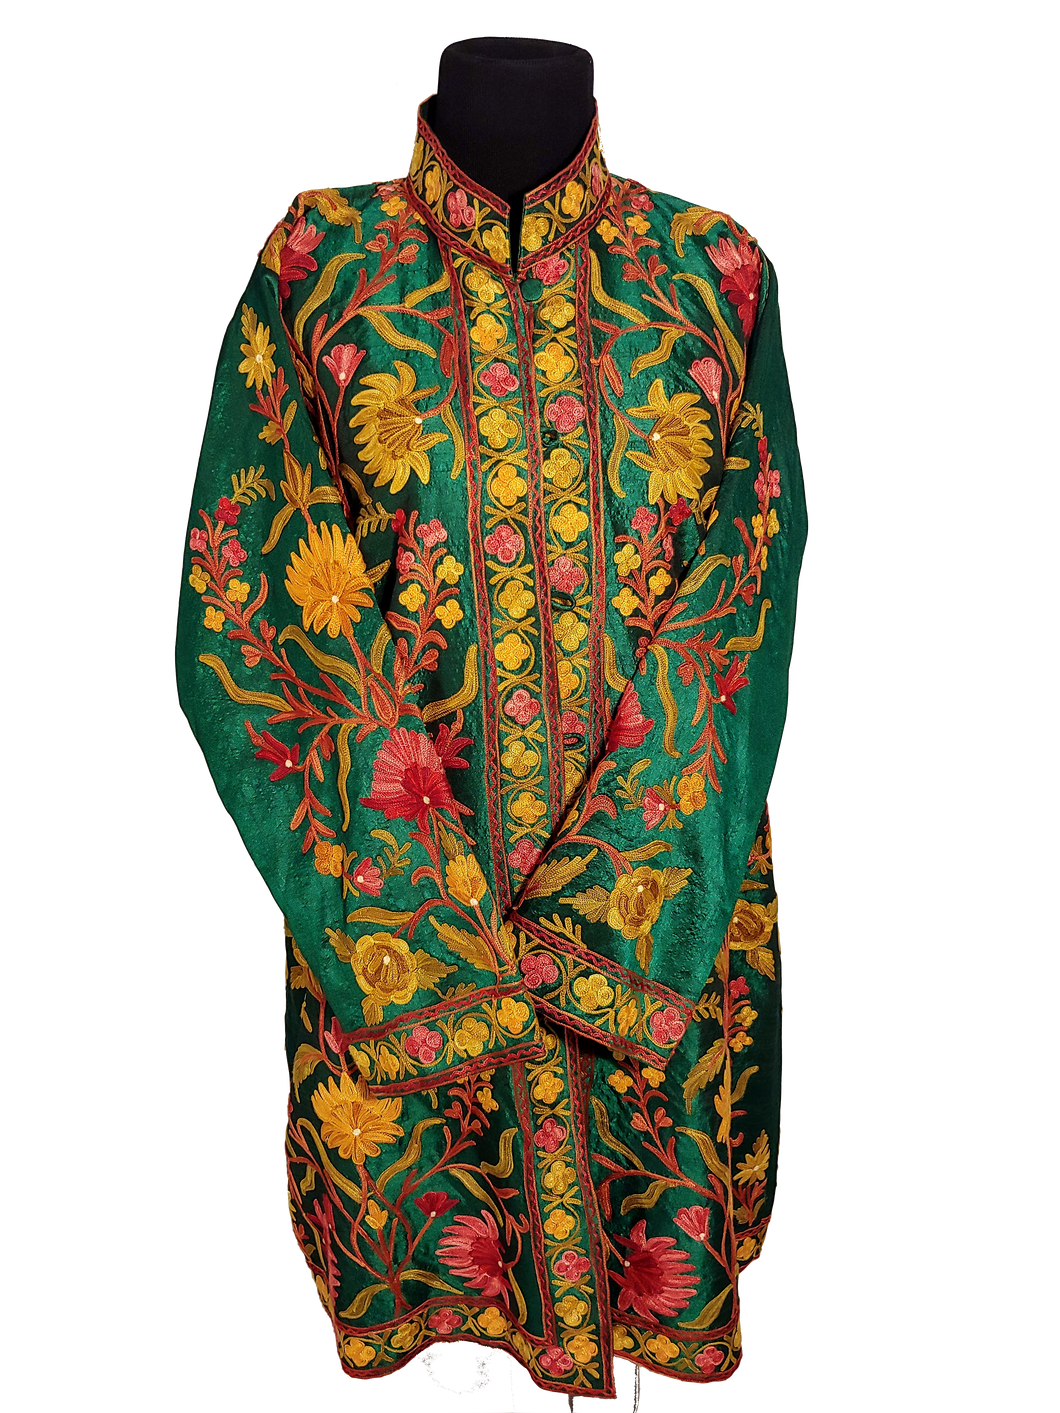 Green Kashmiri Ari embroireded floral silk jacket